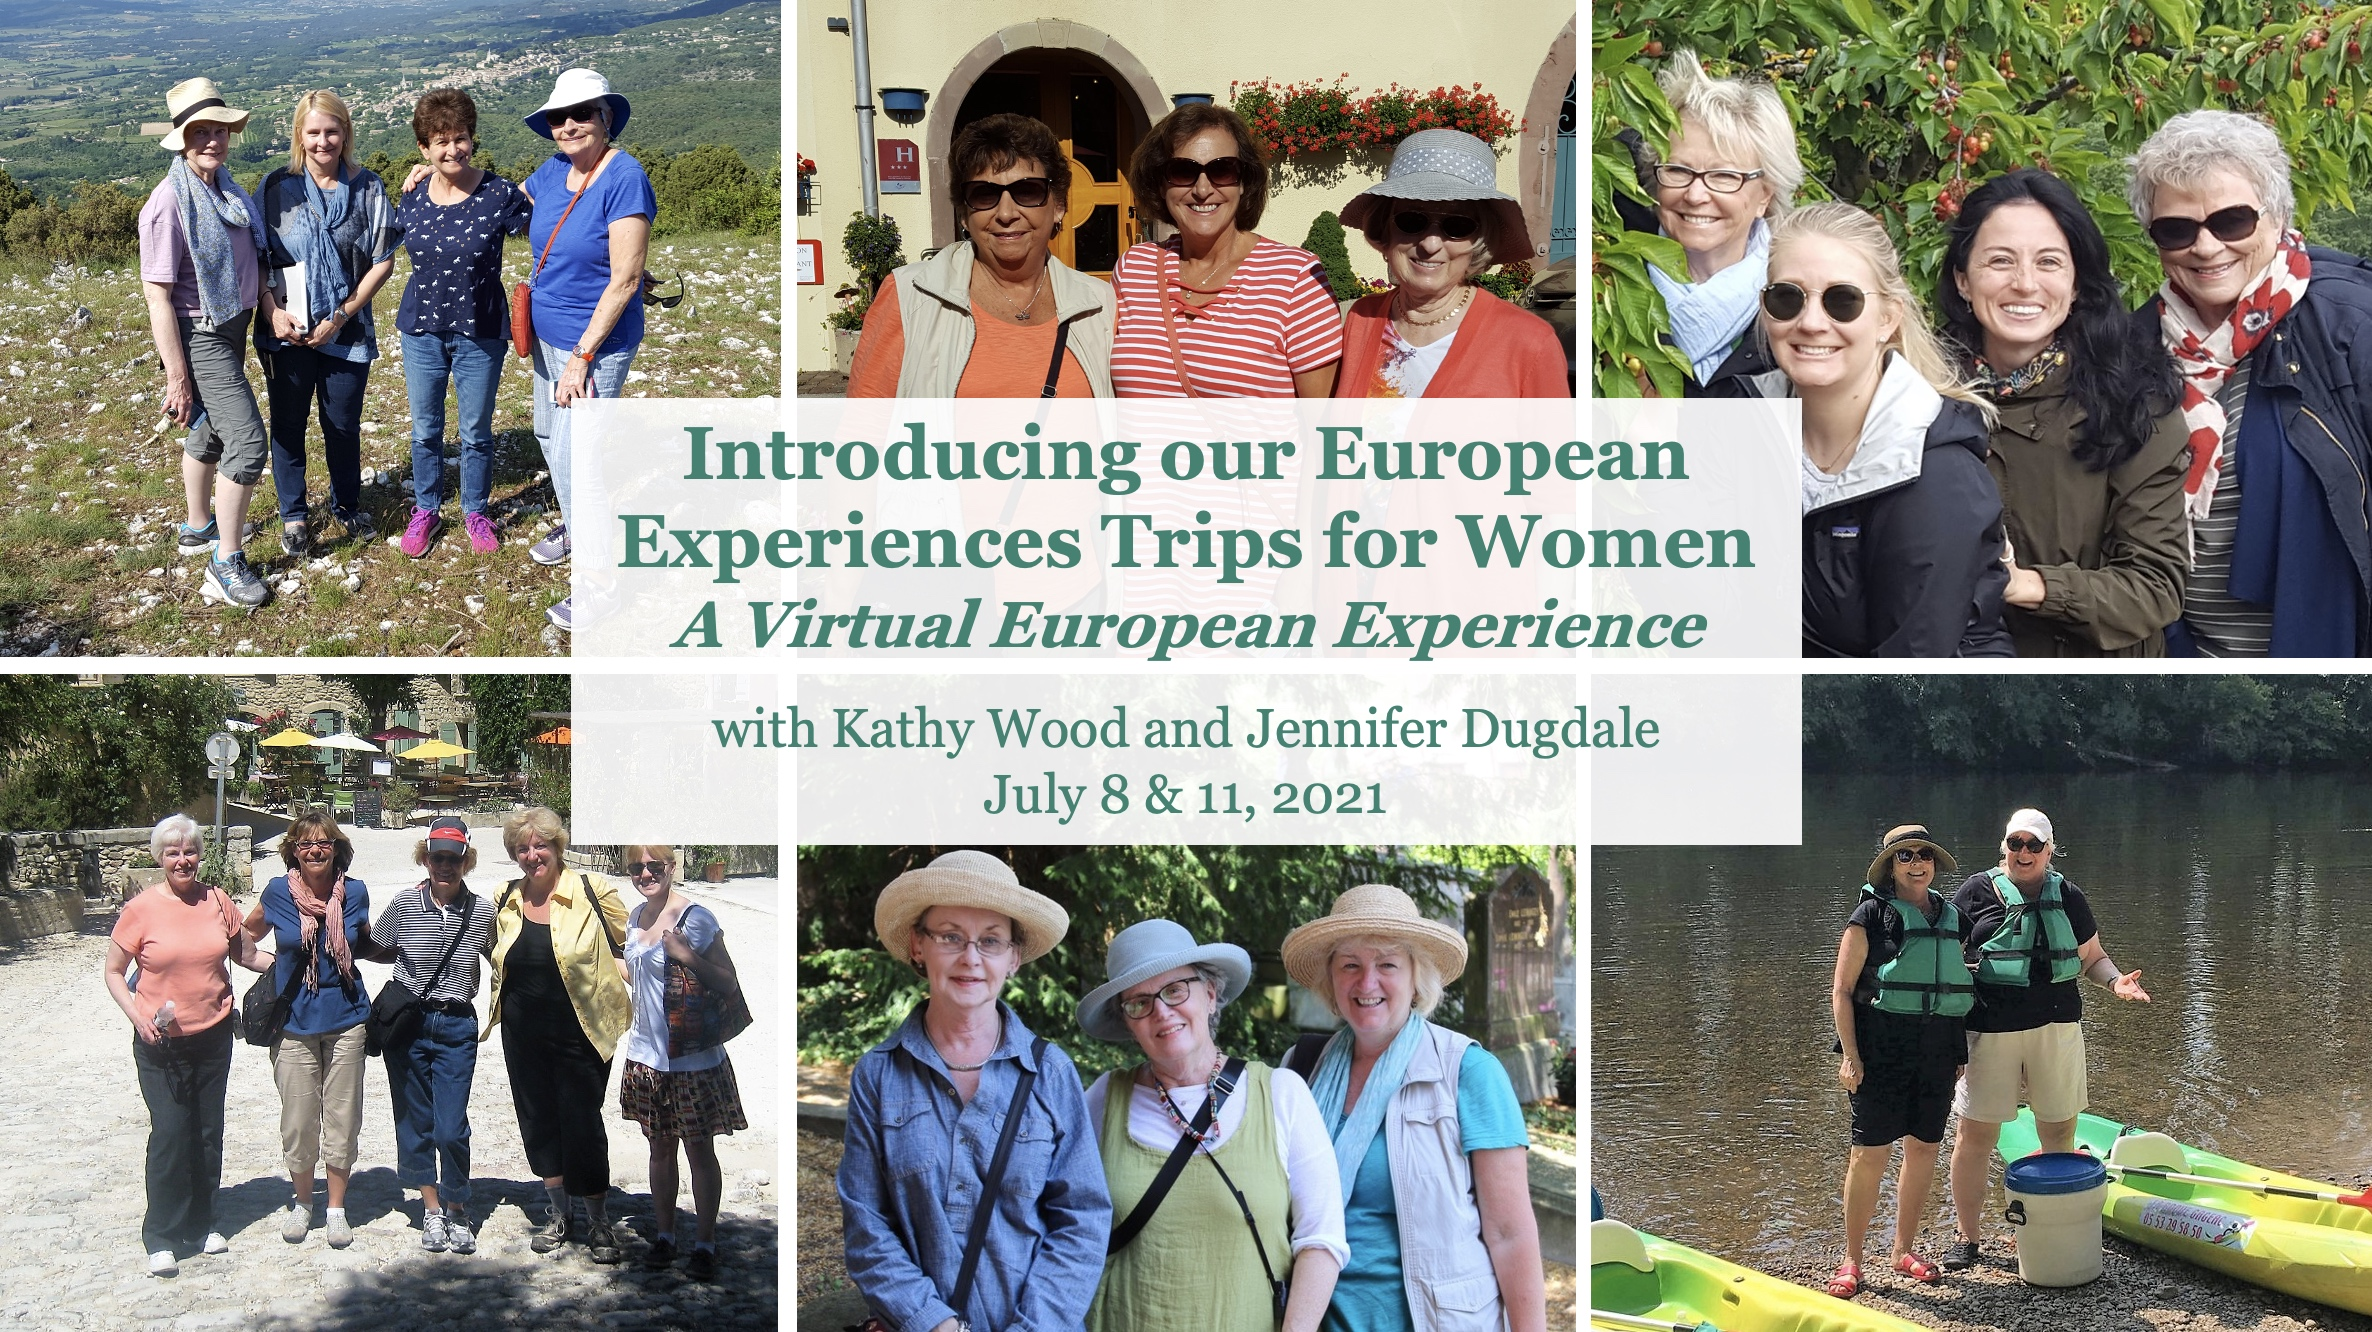 Introducing our European Experiences Trips for Women